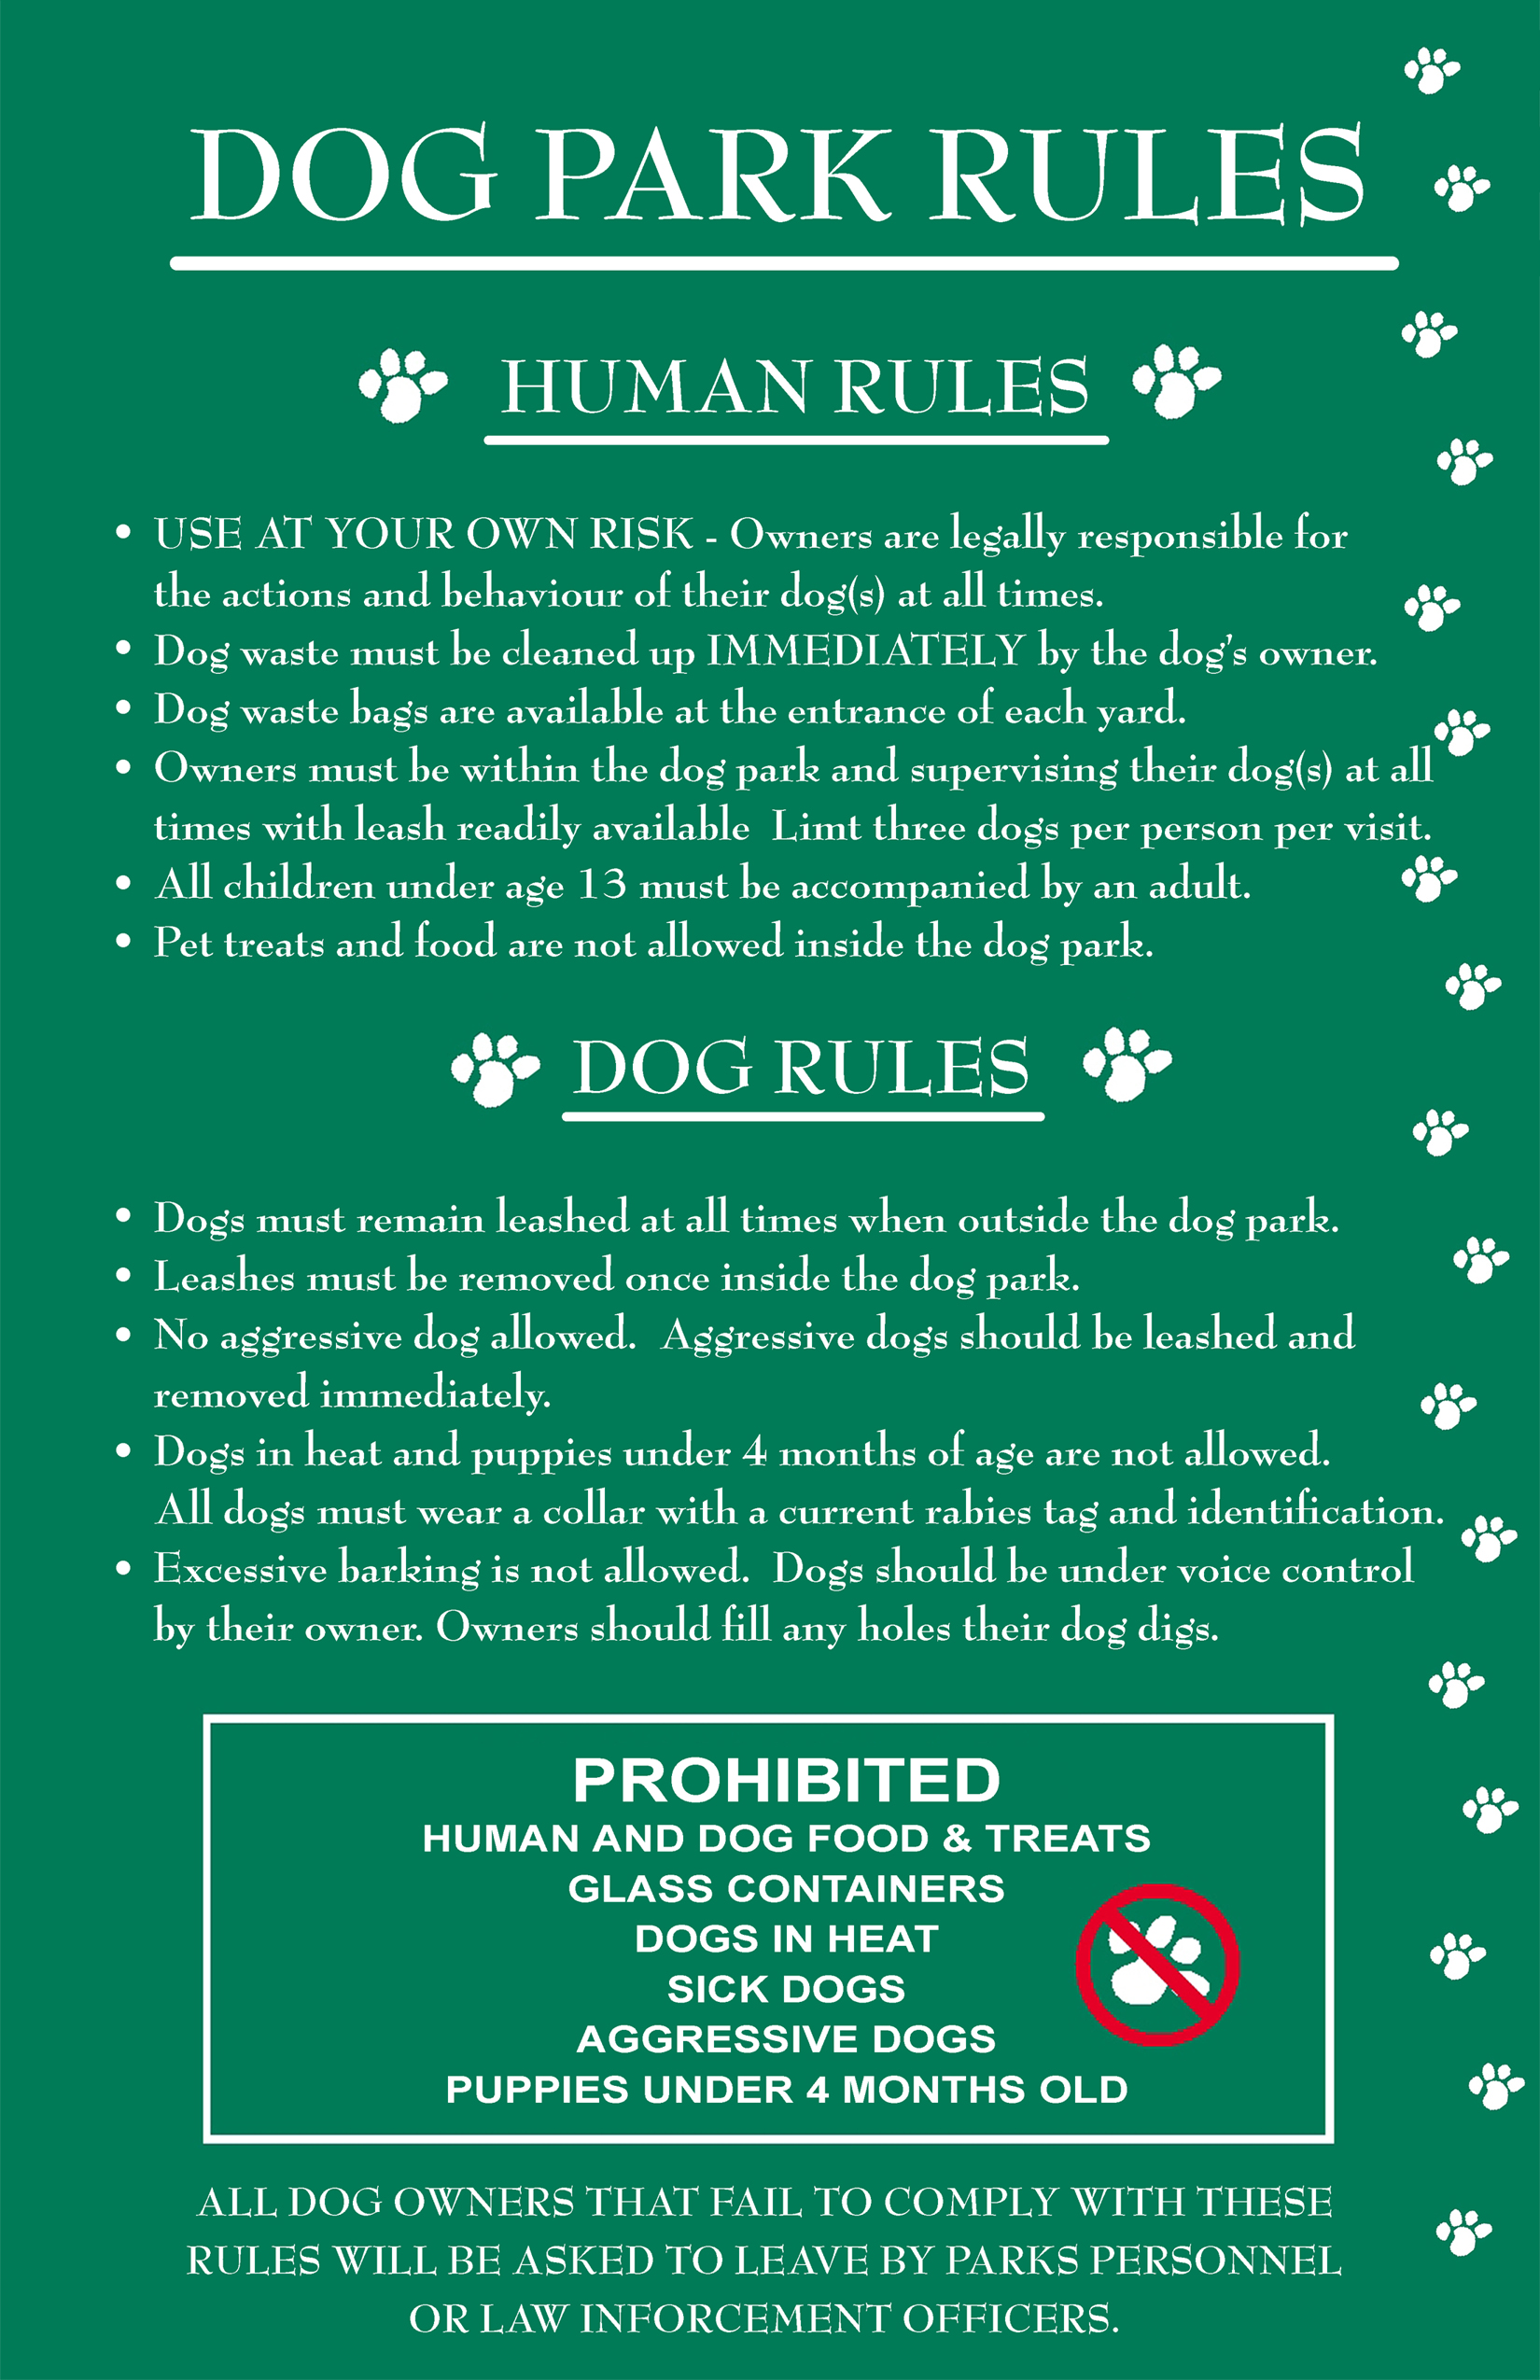 National Park Rules For Dogs